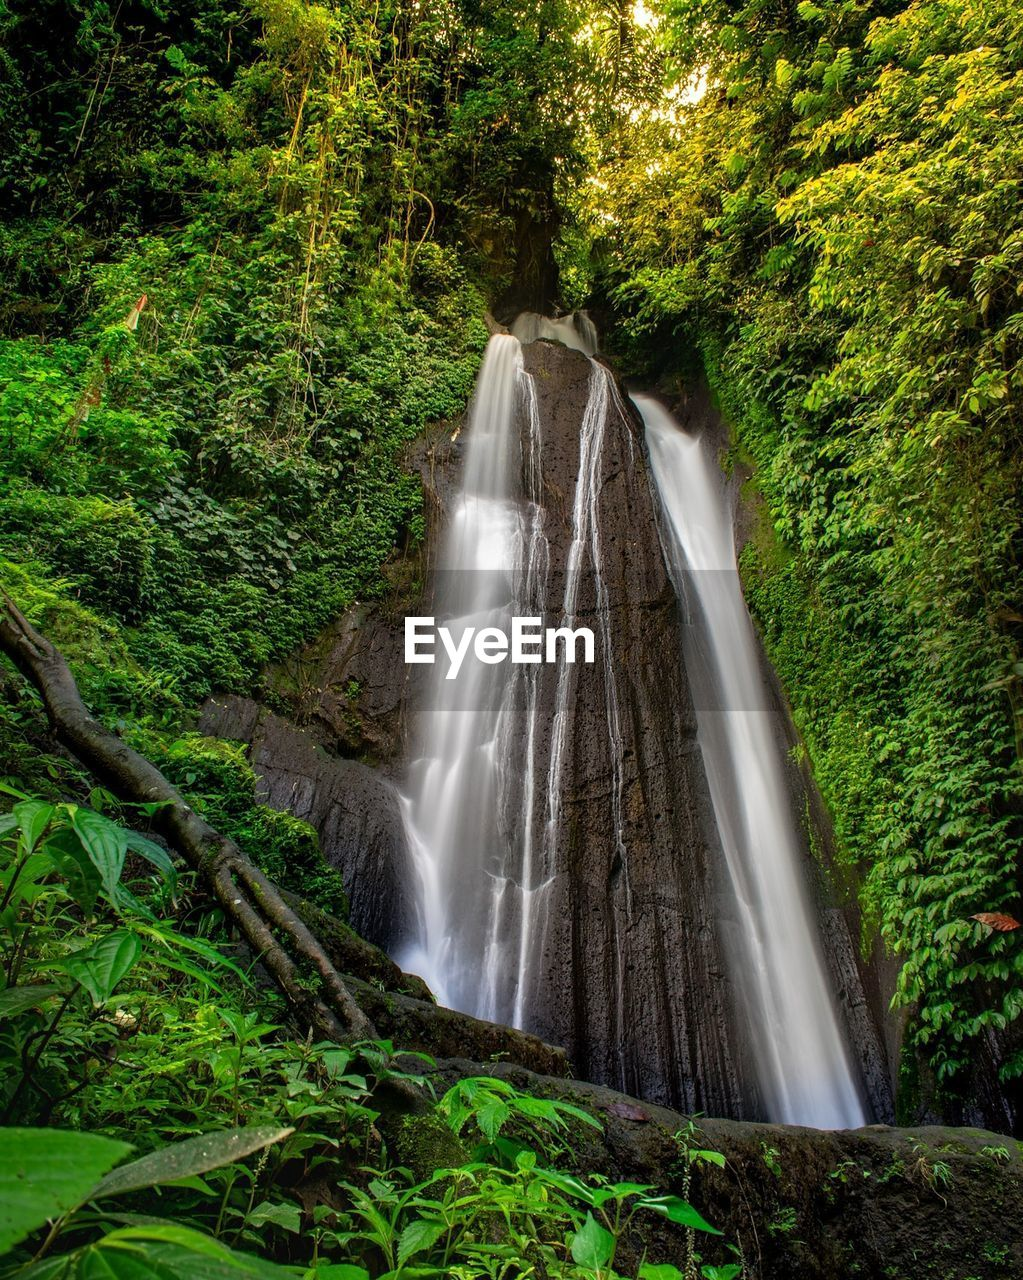 plant, tree, forest, long exposure, scenics - nature, motion, waterfall, land, beauty in nature, growth, green color, blurred motion, nature, water, lush foliage, no people, foliage, rainforest, flowing water, environment, outdoors, flowing, woodland, power in nature, falling water